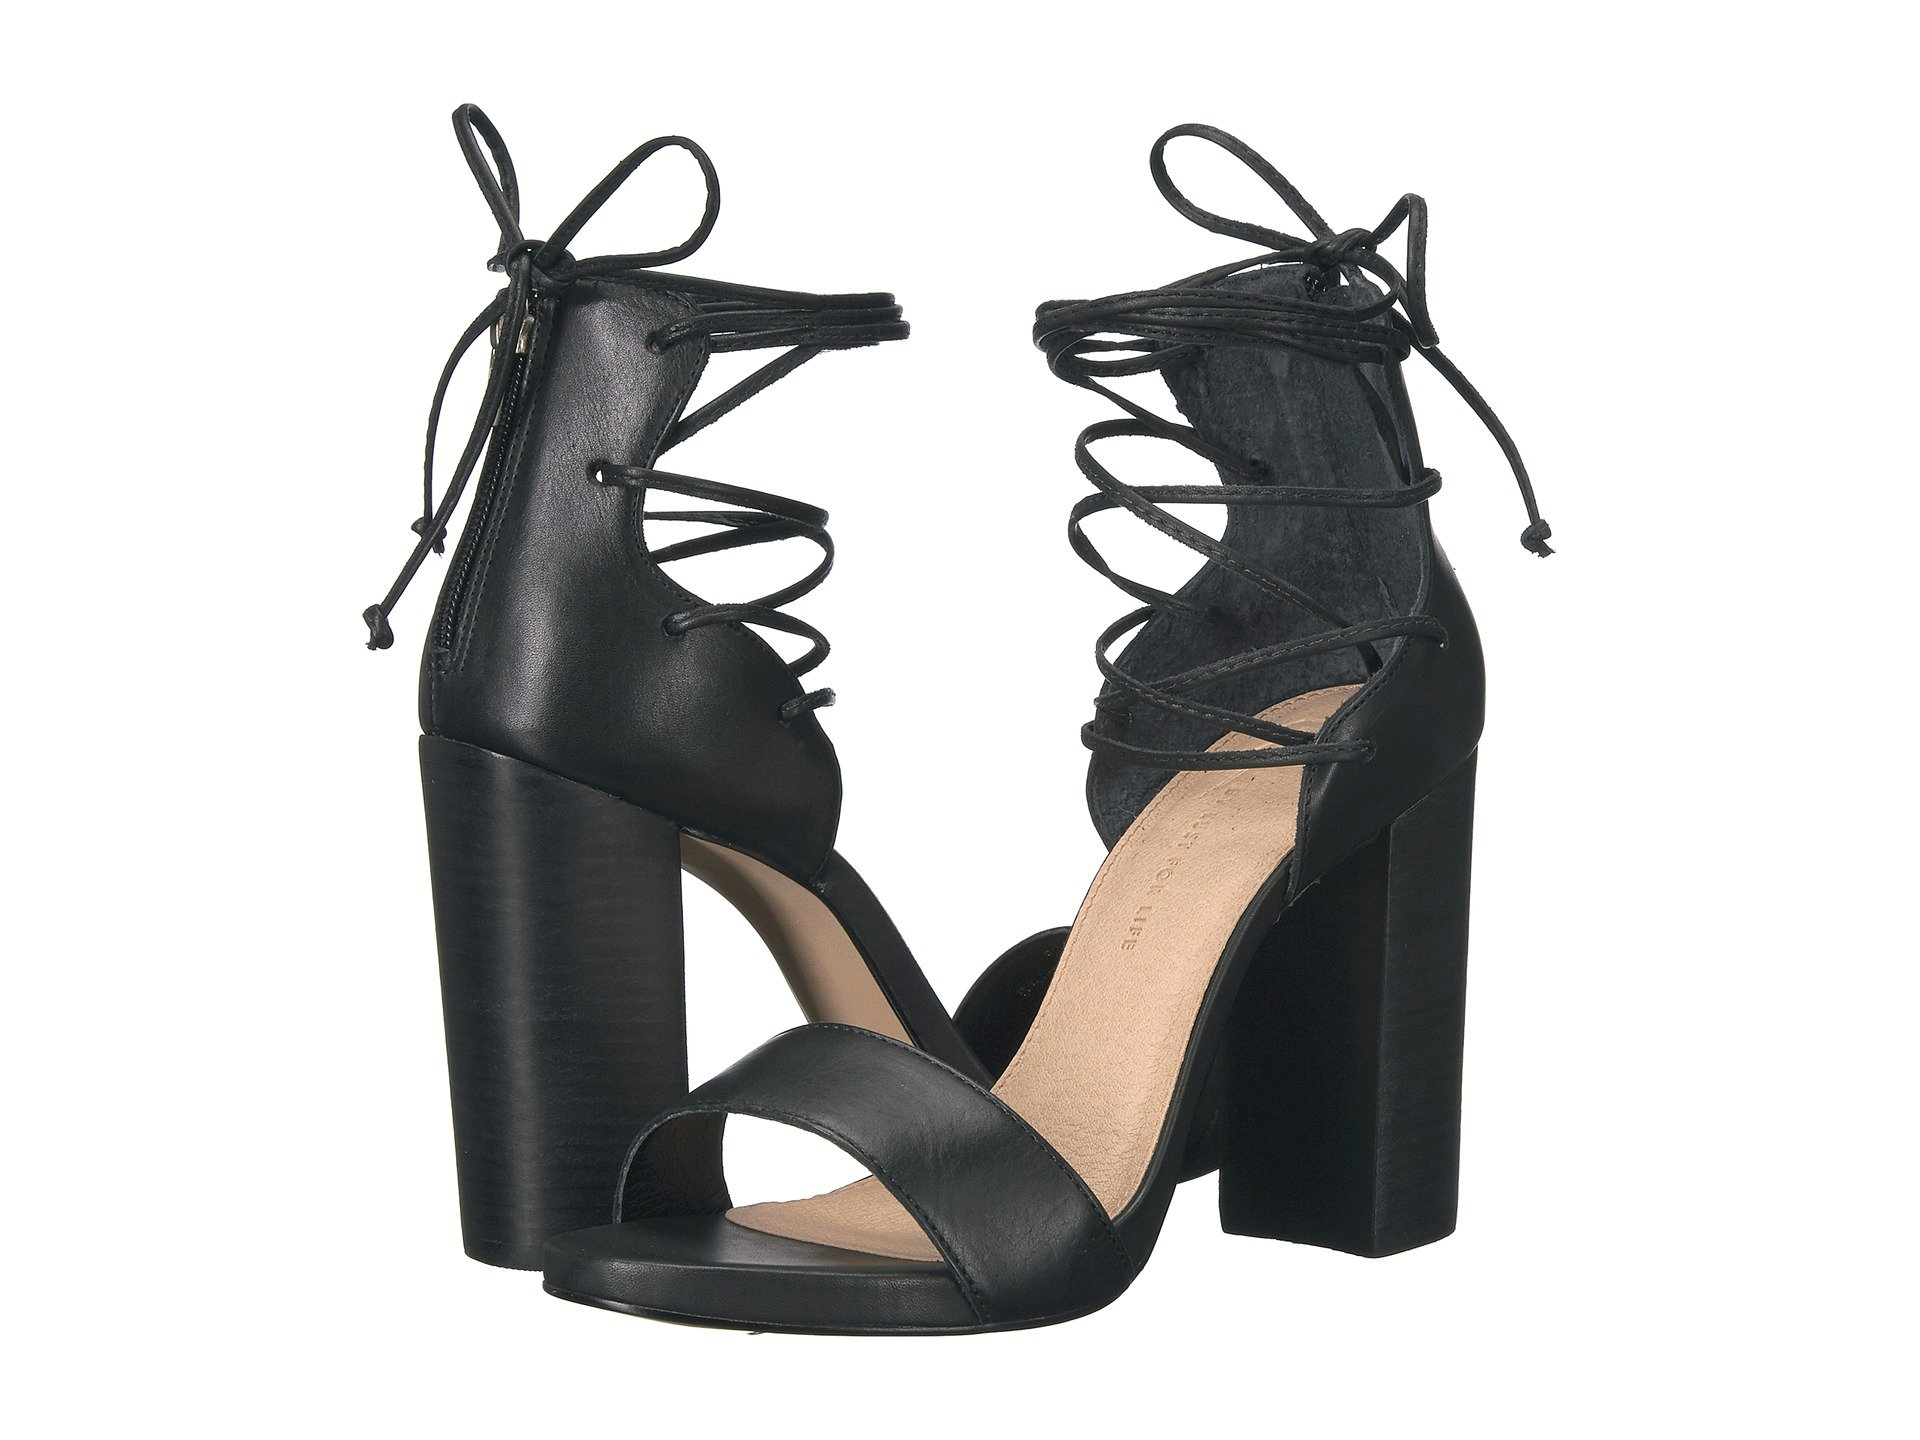 LFL BY LUST FOR LIFE Gaze, Black Leather